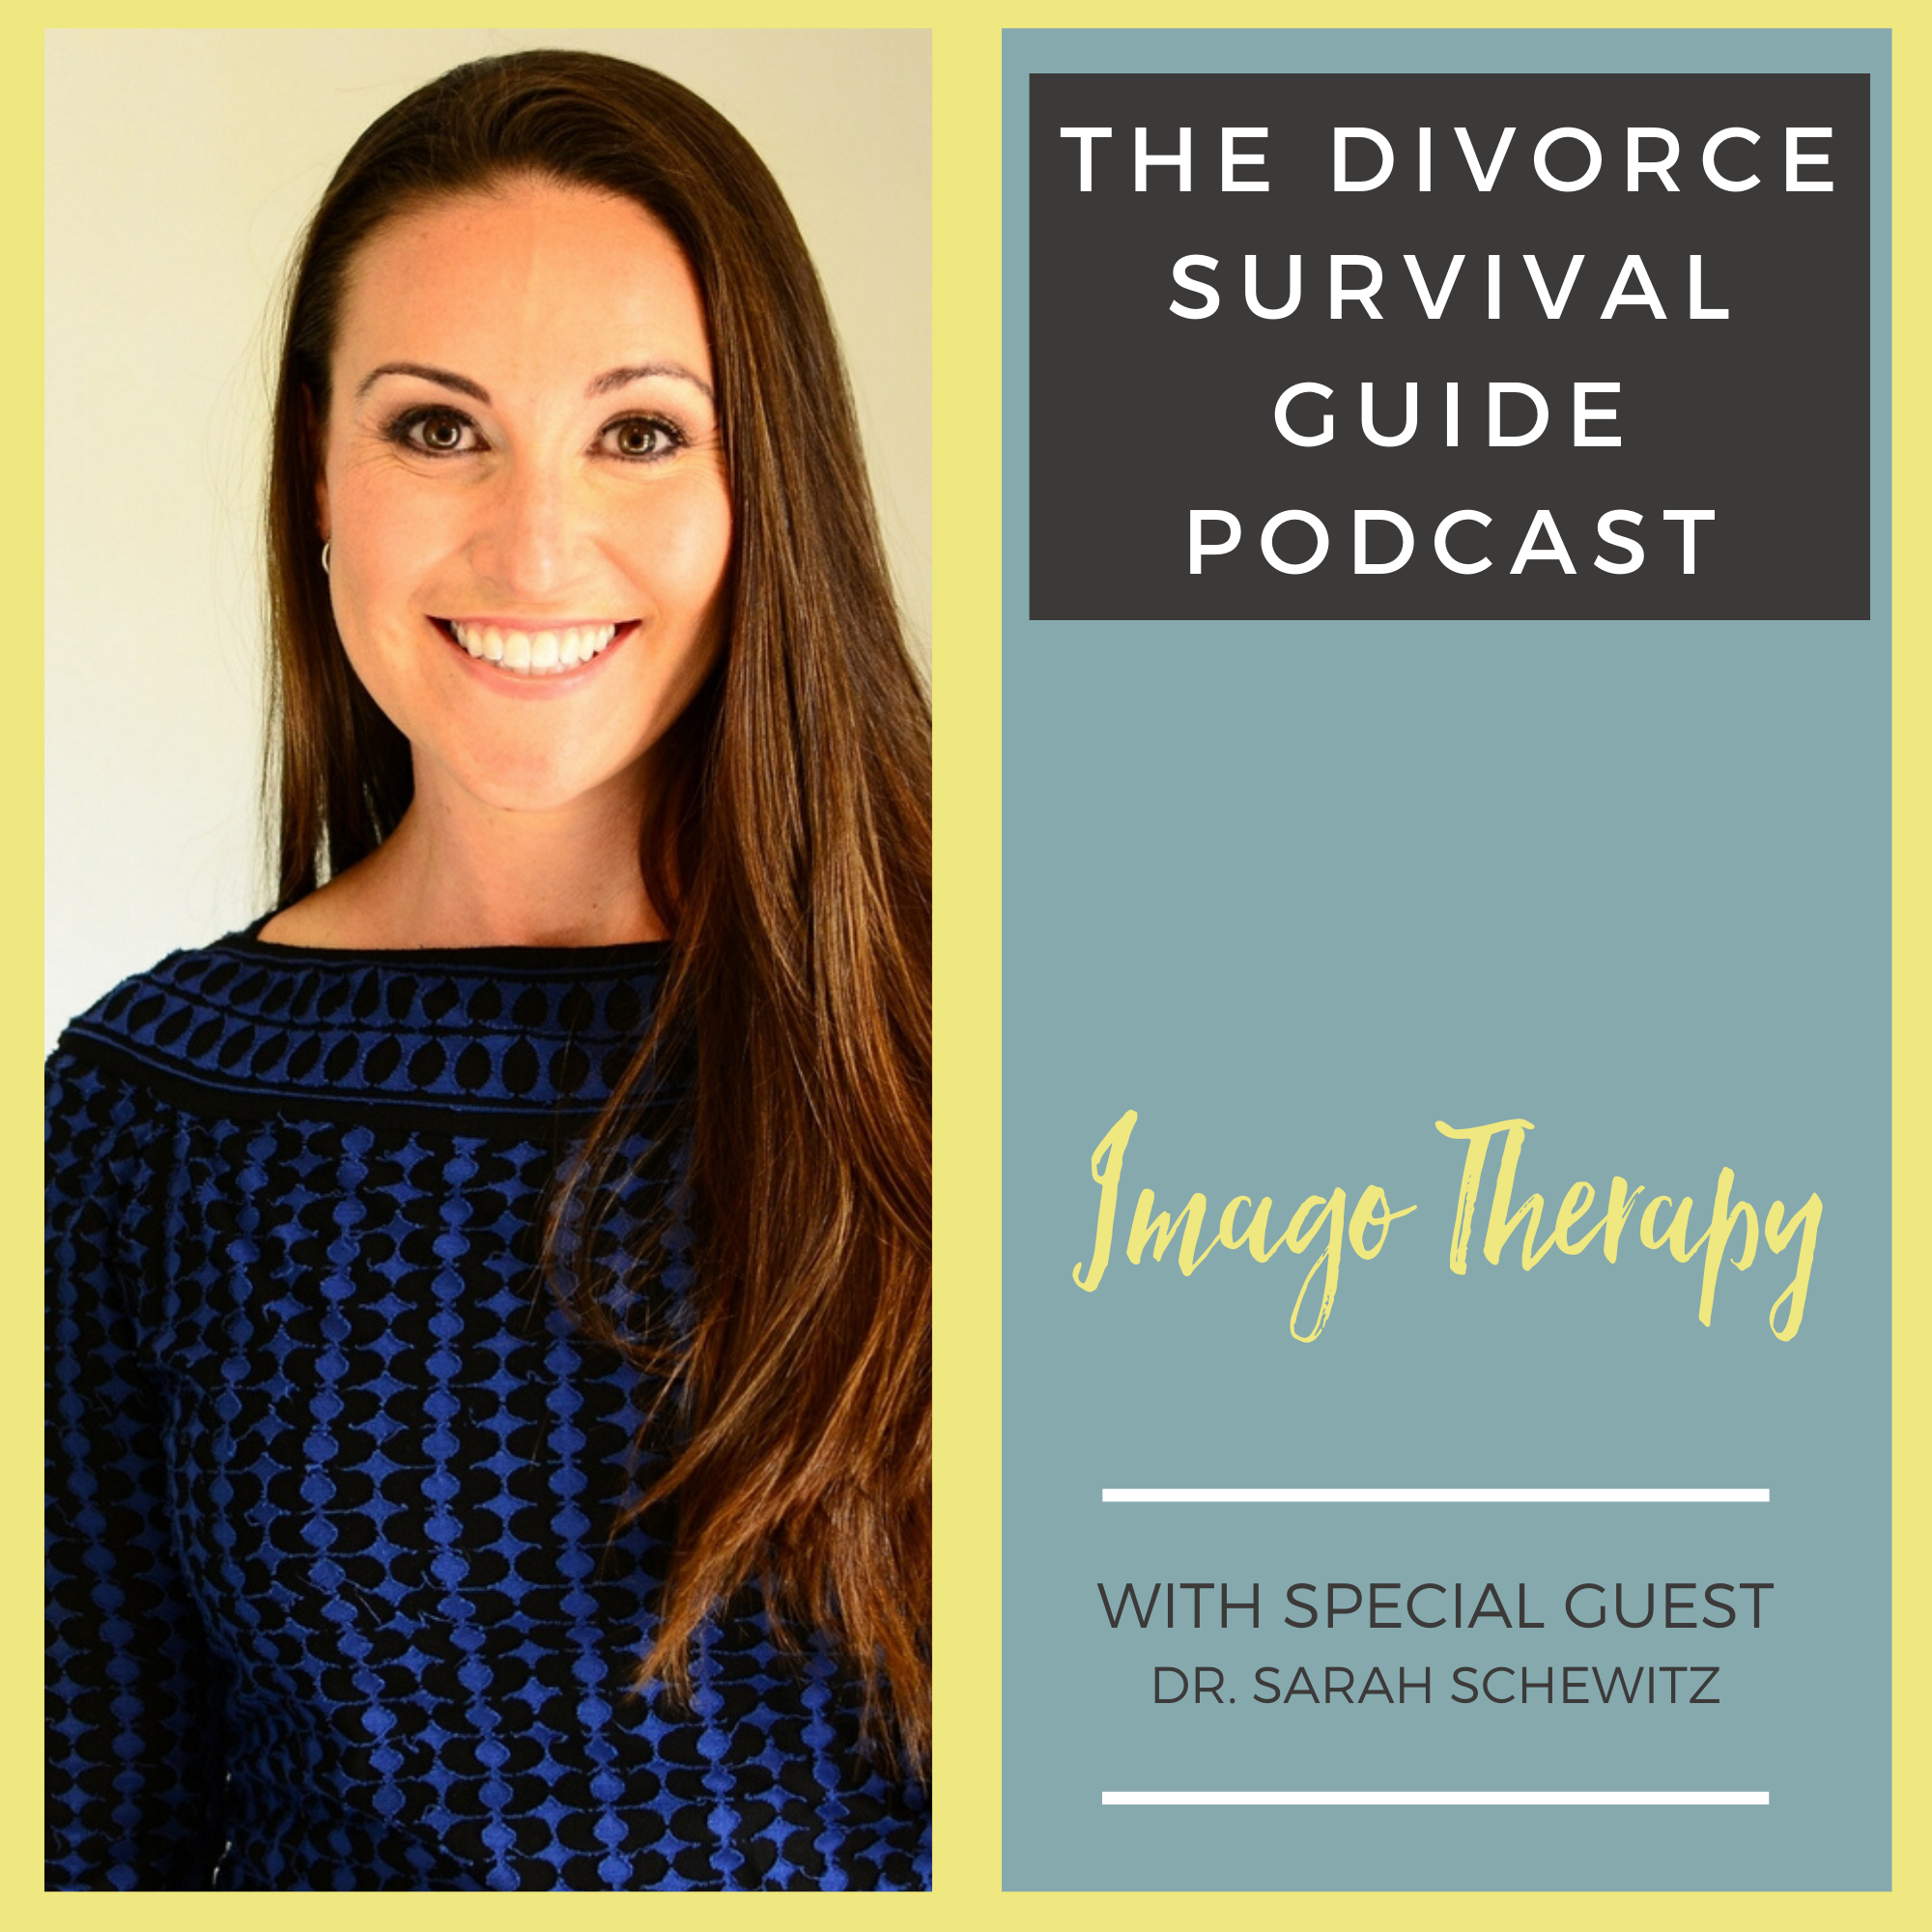 The Divorce Survival Guide Podcast - Imago Therapy with Dr. Sarah Schewitz